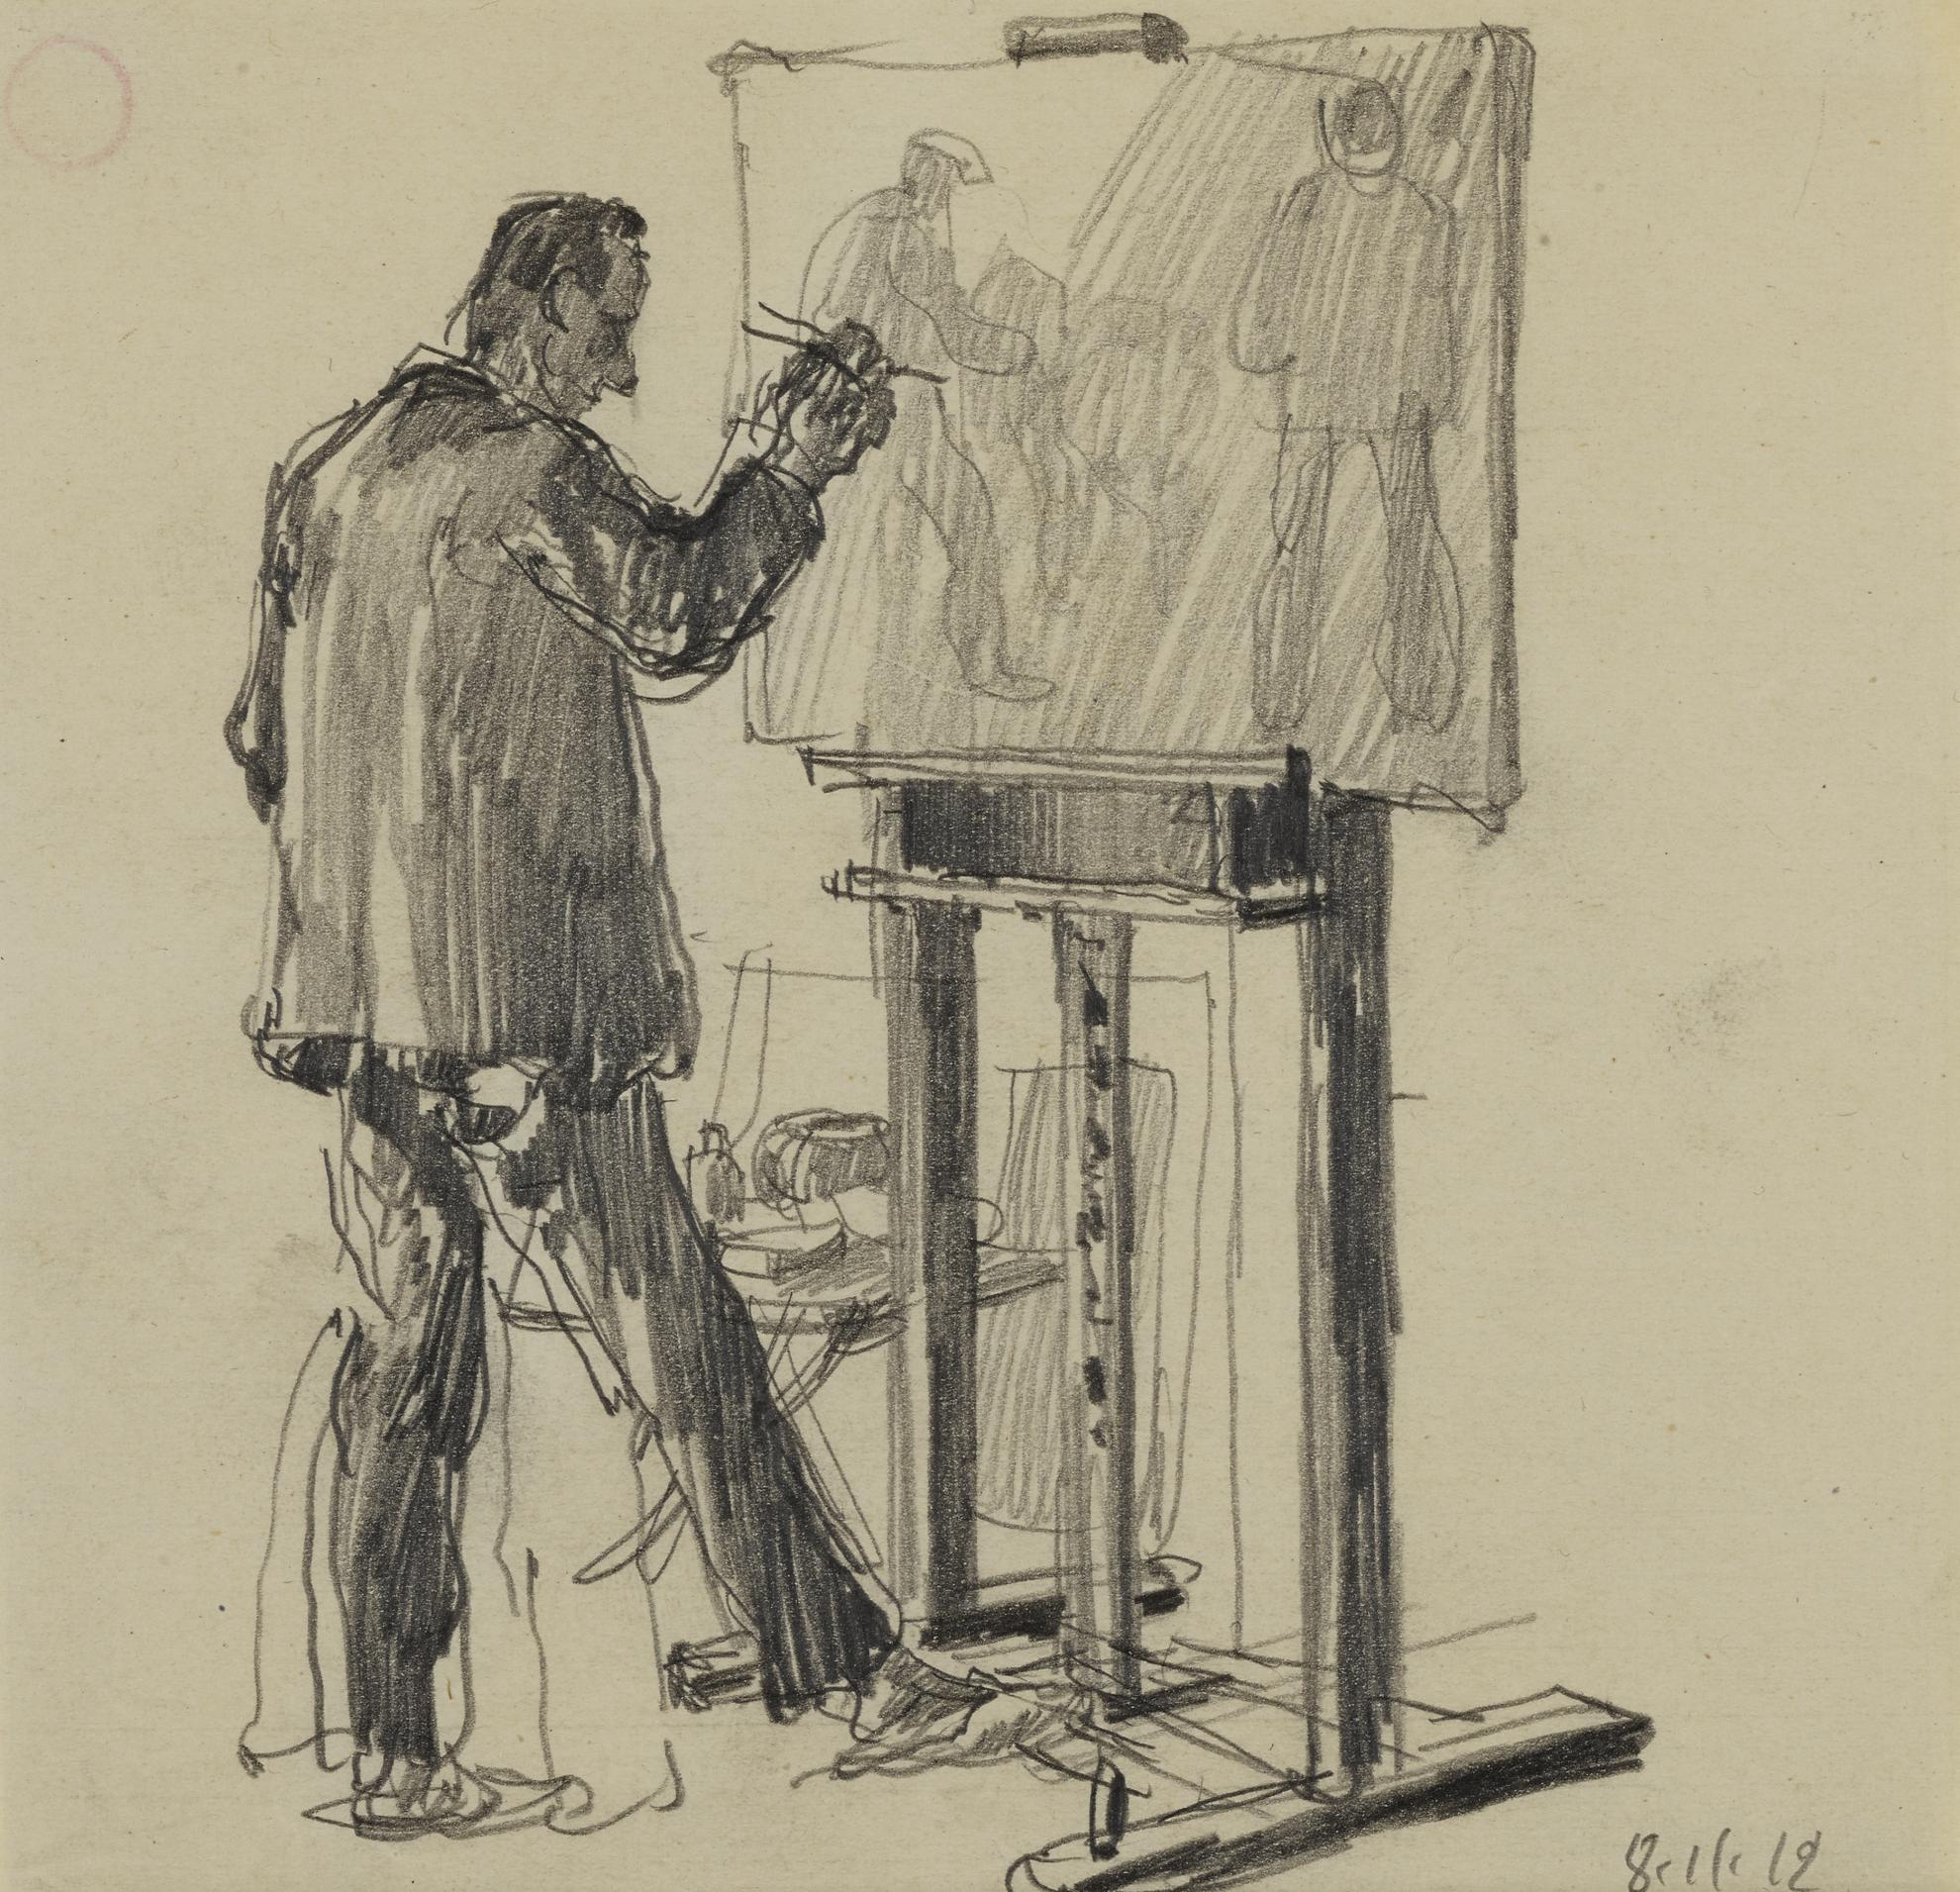 George Grosz-Studio Berlin Sudende-Herbert Fiedler An Der Staffelei (Studio Berlin Sudende—Herbert Fiedler At The Easel)-1912